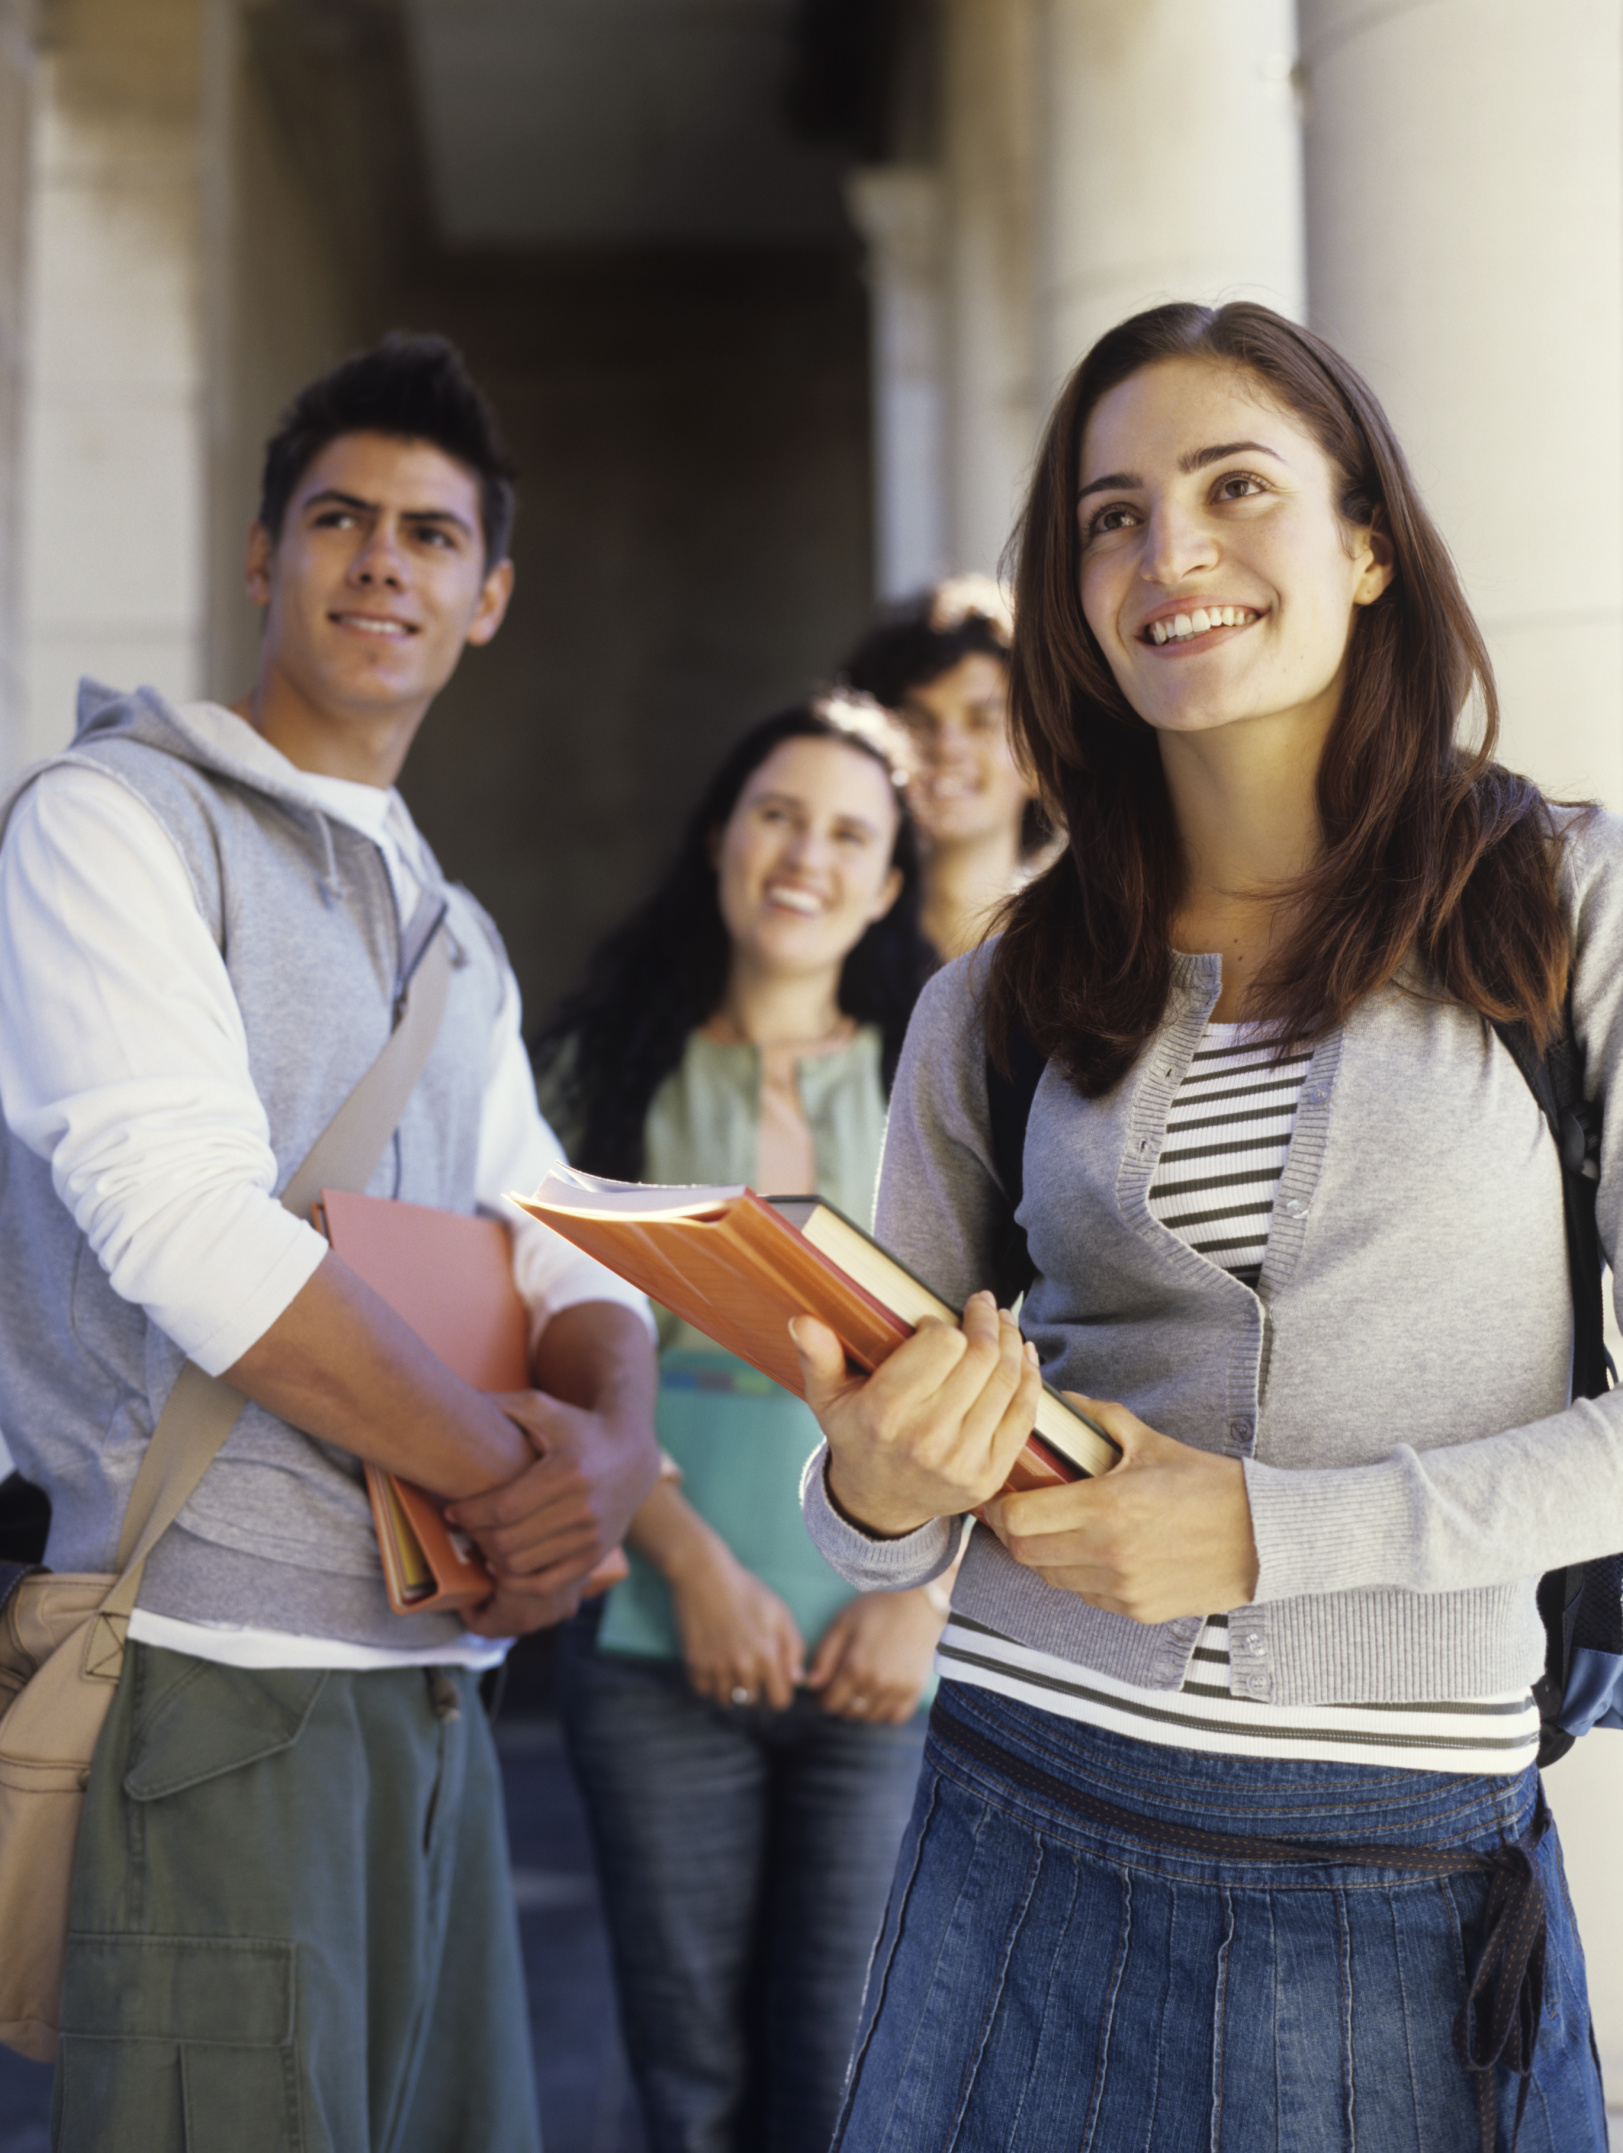 the similarities and the differences between high school and college Here are some examples of differences between high school and college teacher/student contact high school: the contact between teachers and students is closer and more frequent (five days/week.